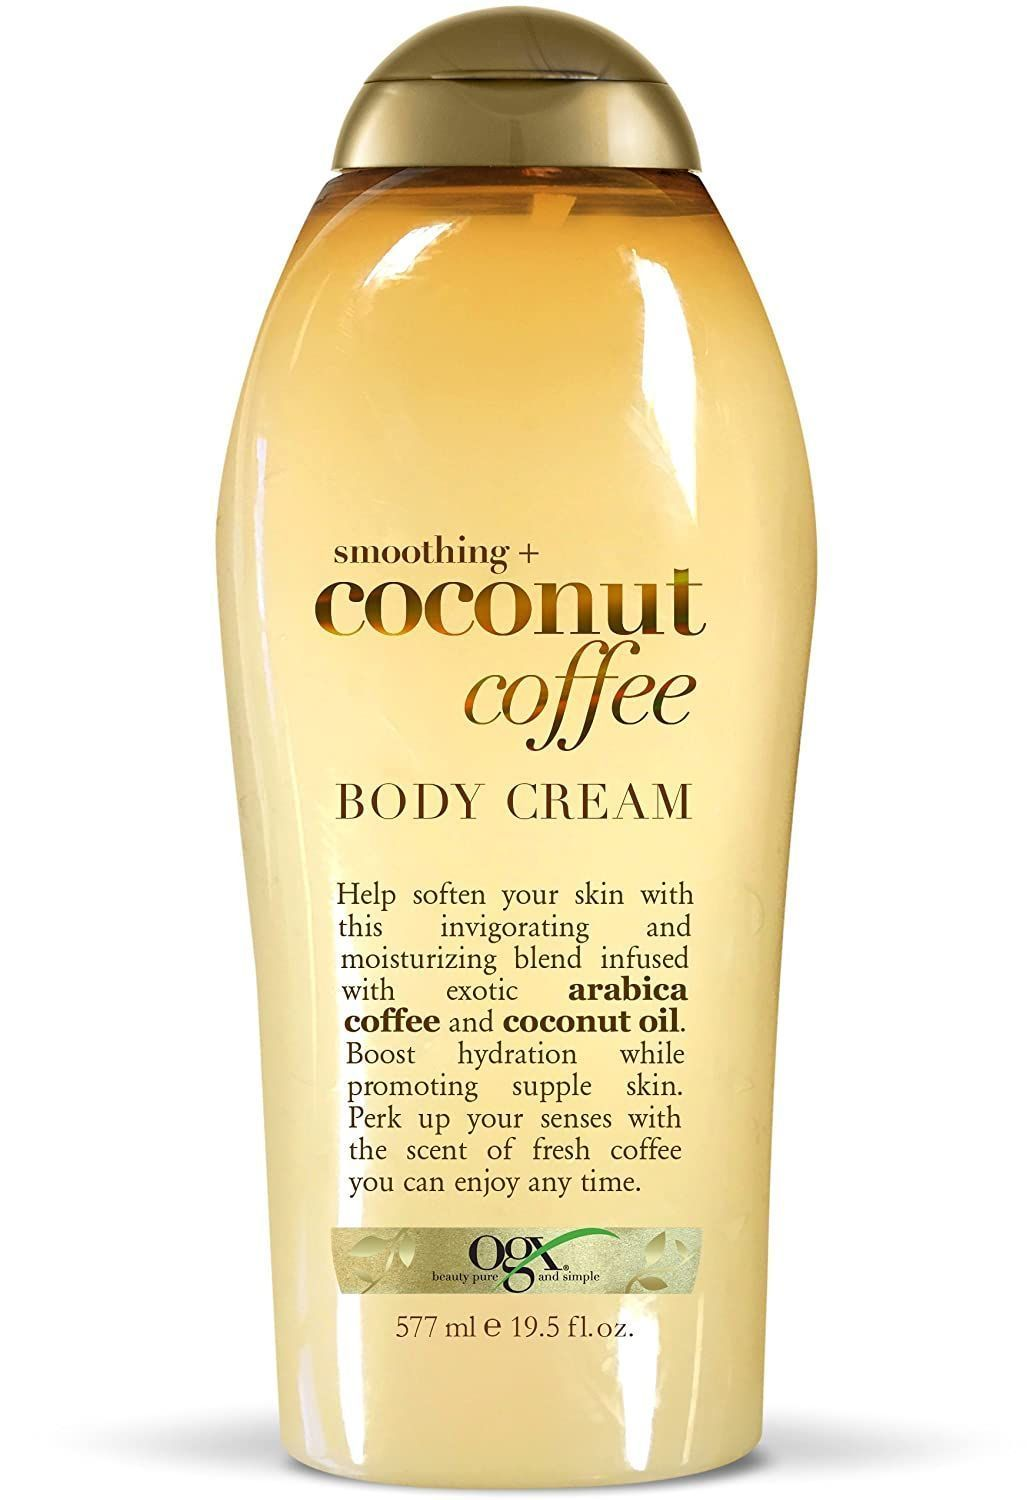 Smoothing + Coconut Coffee Body Cream